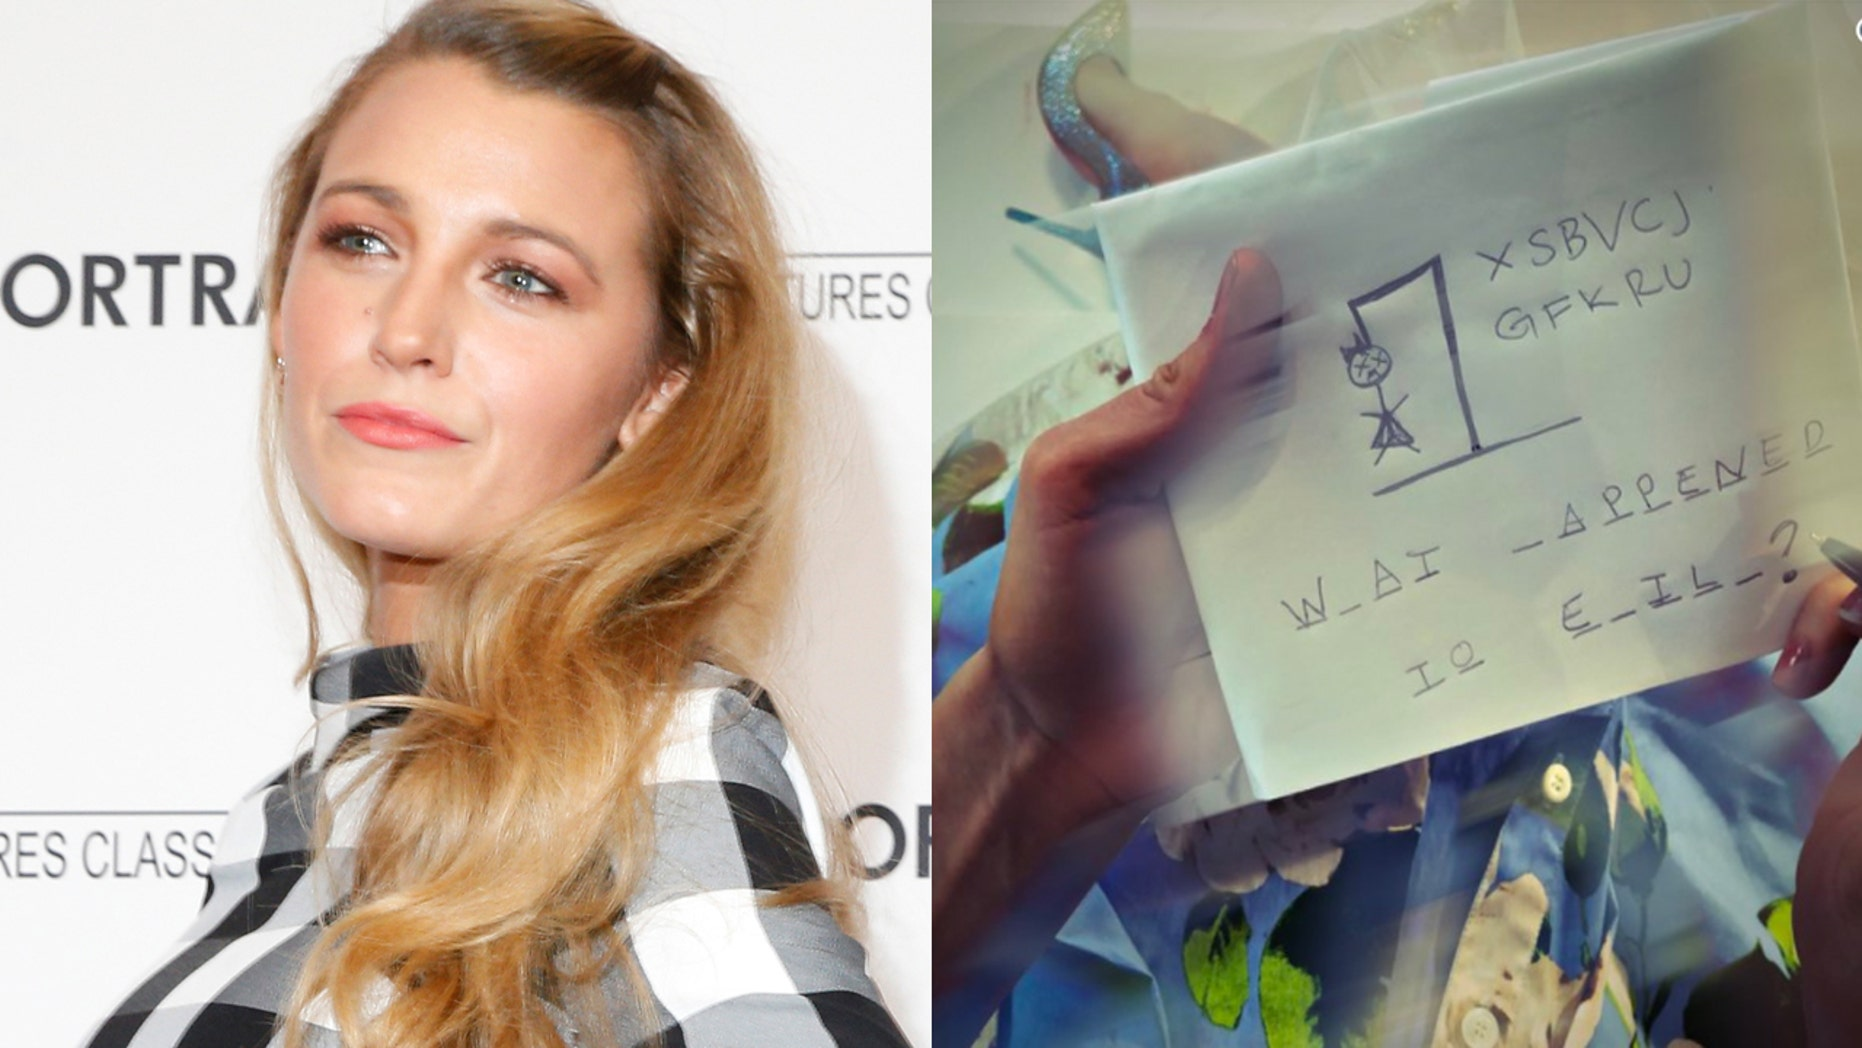 Blake Lively's Instagram posts have mysteriously disappeared by the actress managed to share one cryptic post on Twitter.